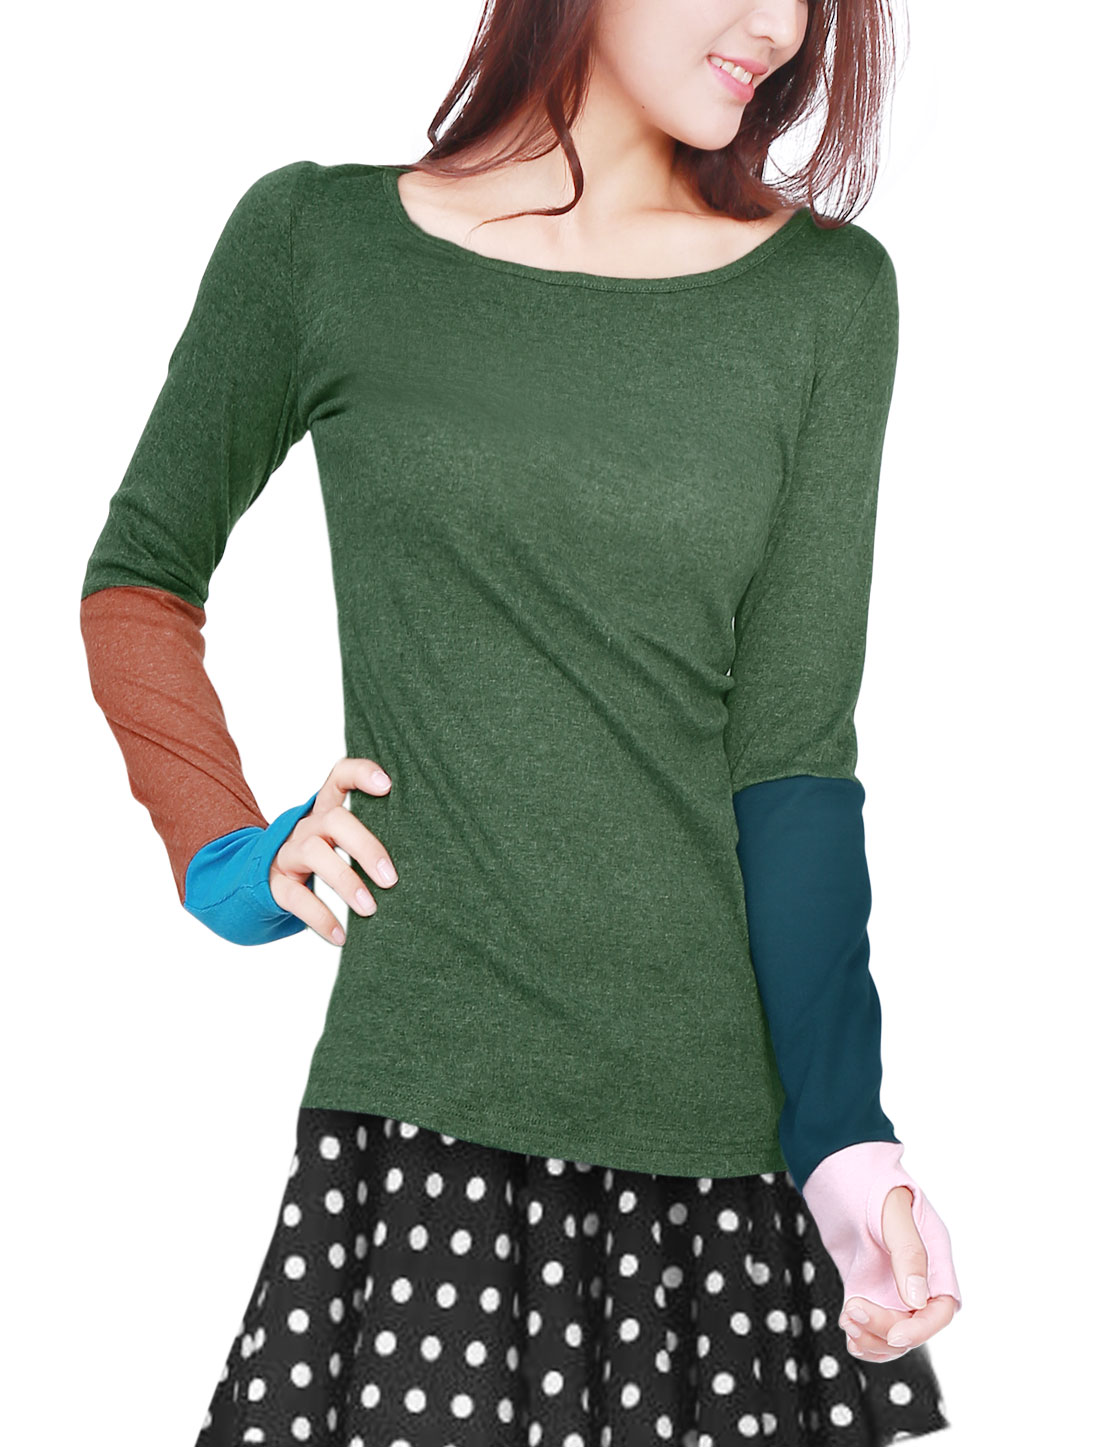 Lady Thumb Hole Sleeve Scoop Neck Stretchy T-Shirt Dark Green XS